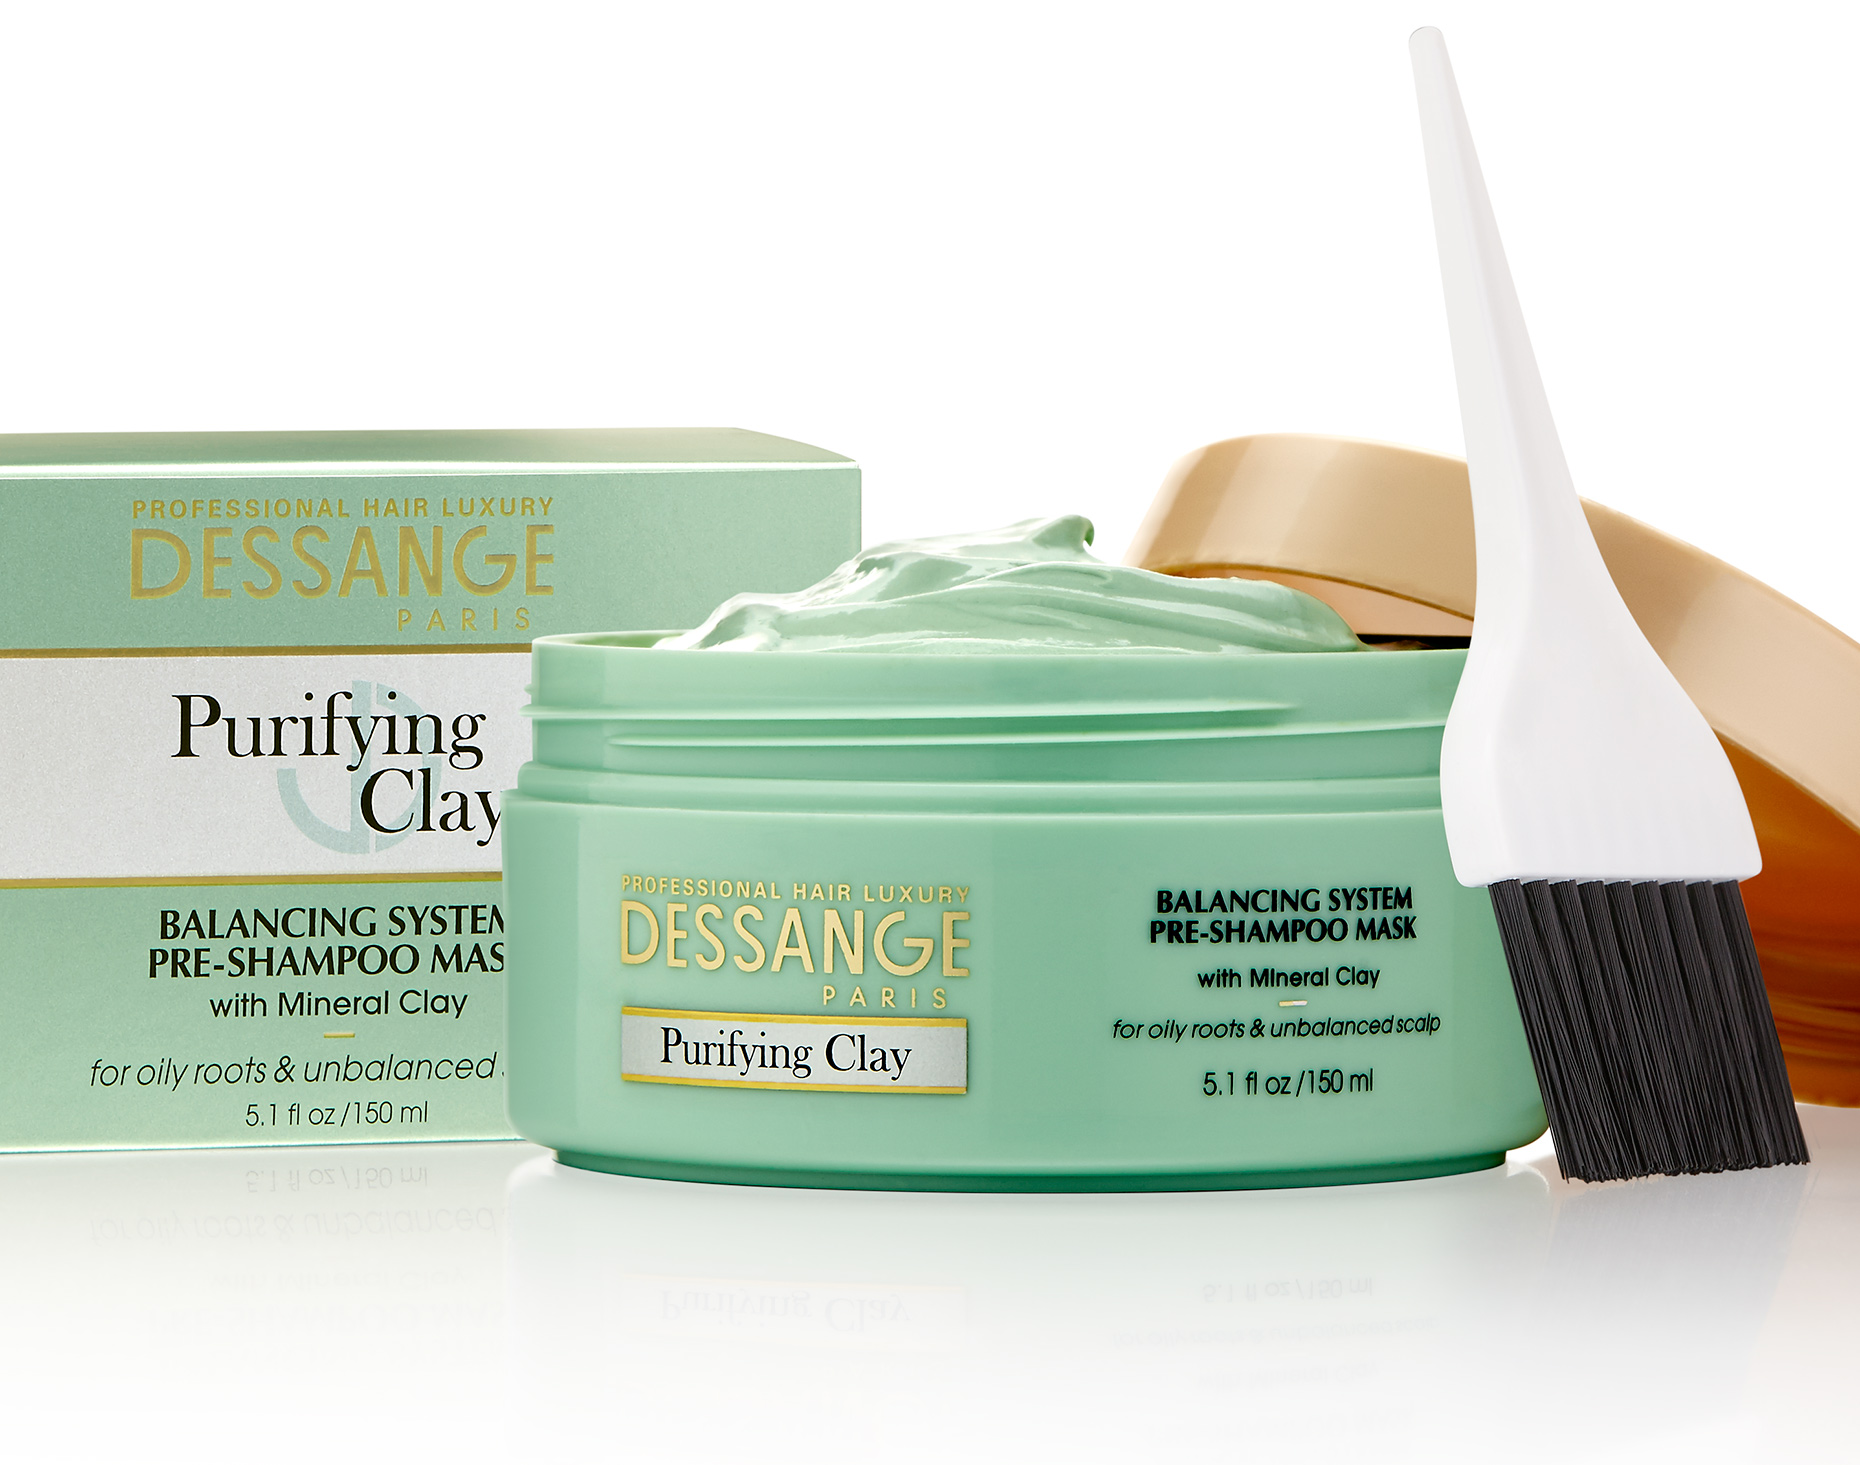 Red Productions Product & Still Life Photography Dessange Purifying Clay Pre-Shampoo Mask